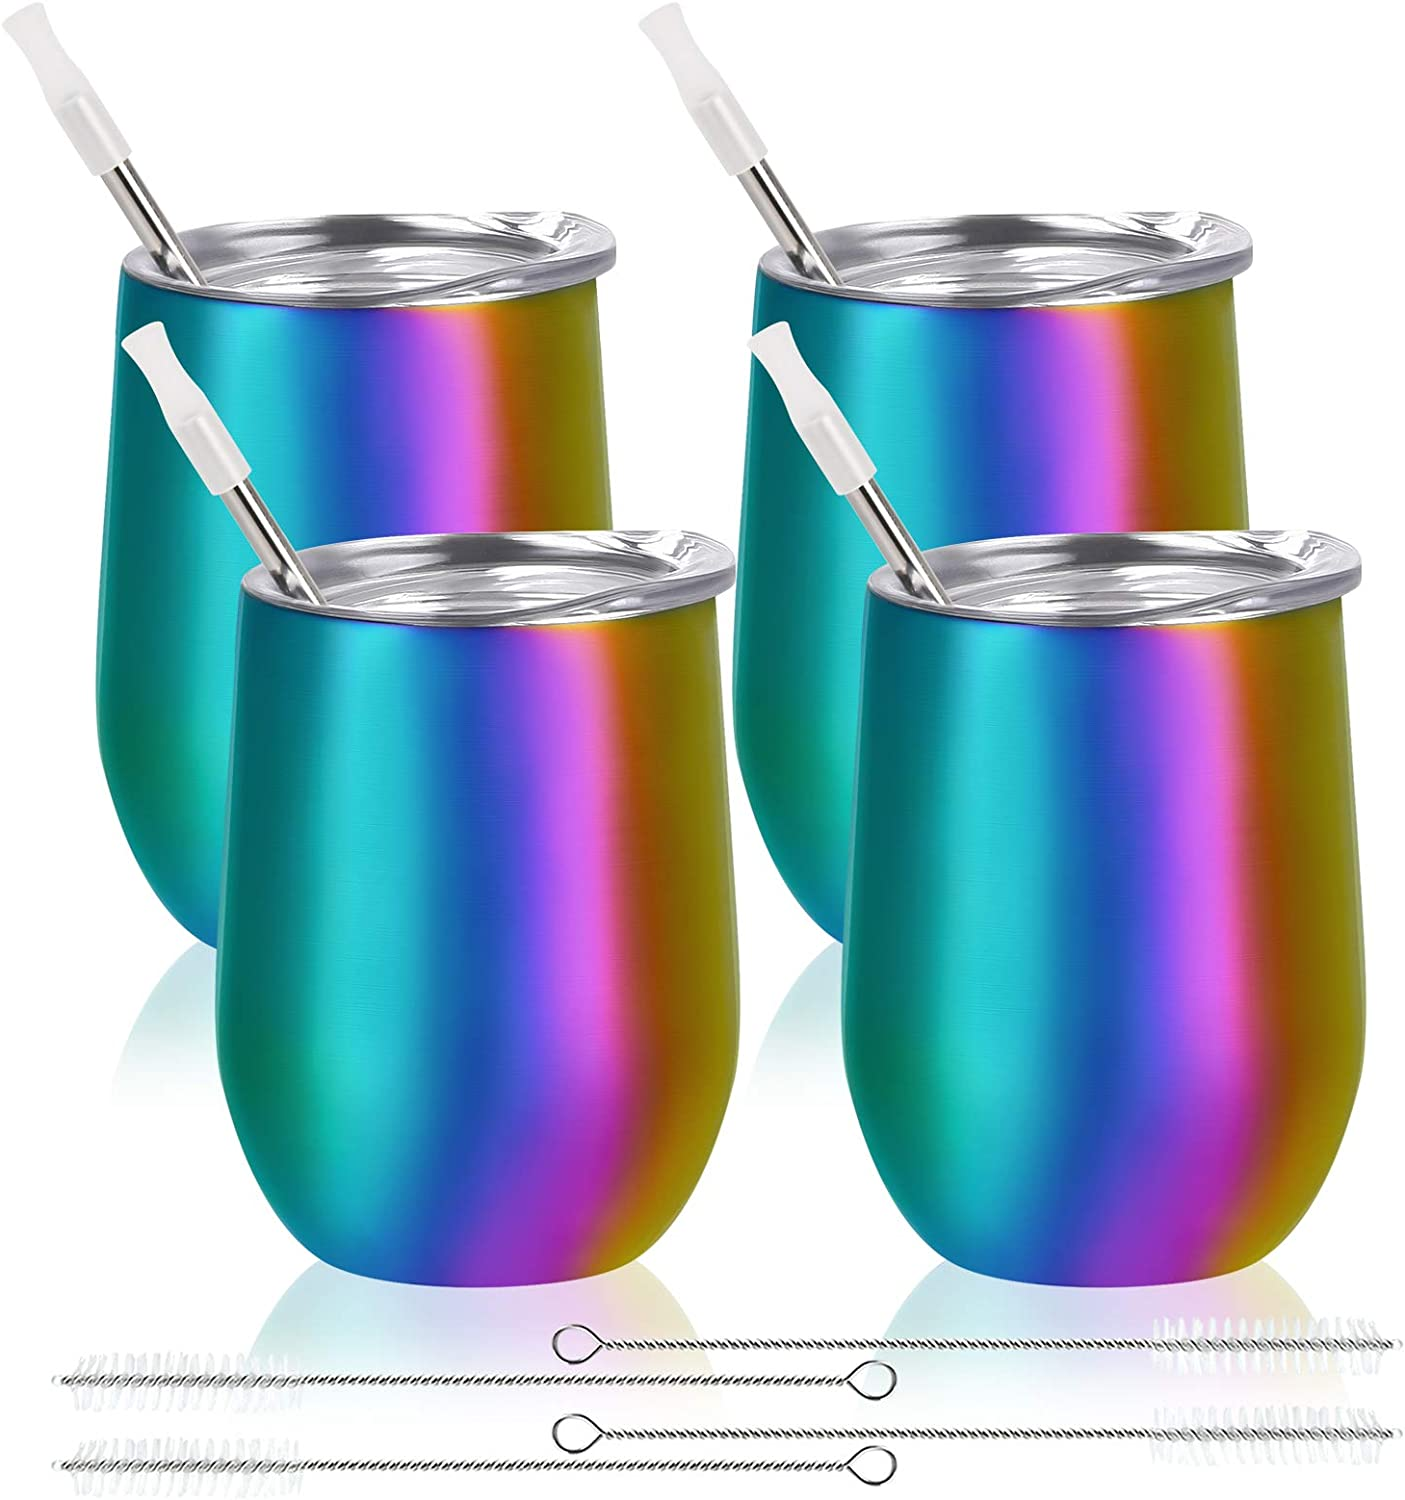 4 pack Rainbow Stainless Steel Wine Tumbler with Lids and Straws, 12 oz Double Wall Vacuum Insulated Wine Tumblers Glass, Set of 4 Stemless Cup for Coffee, Wine, Cocktails, Drinks, Ice Cream,